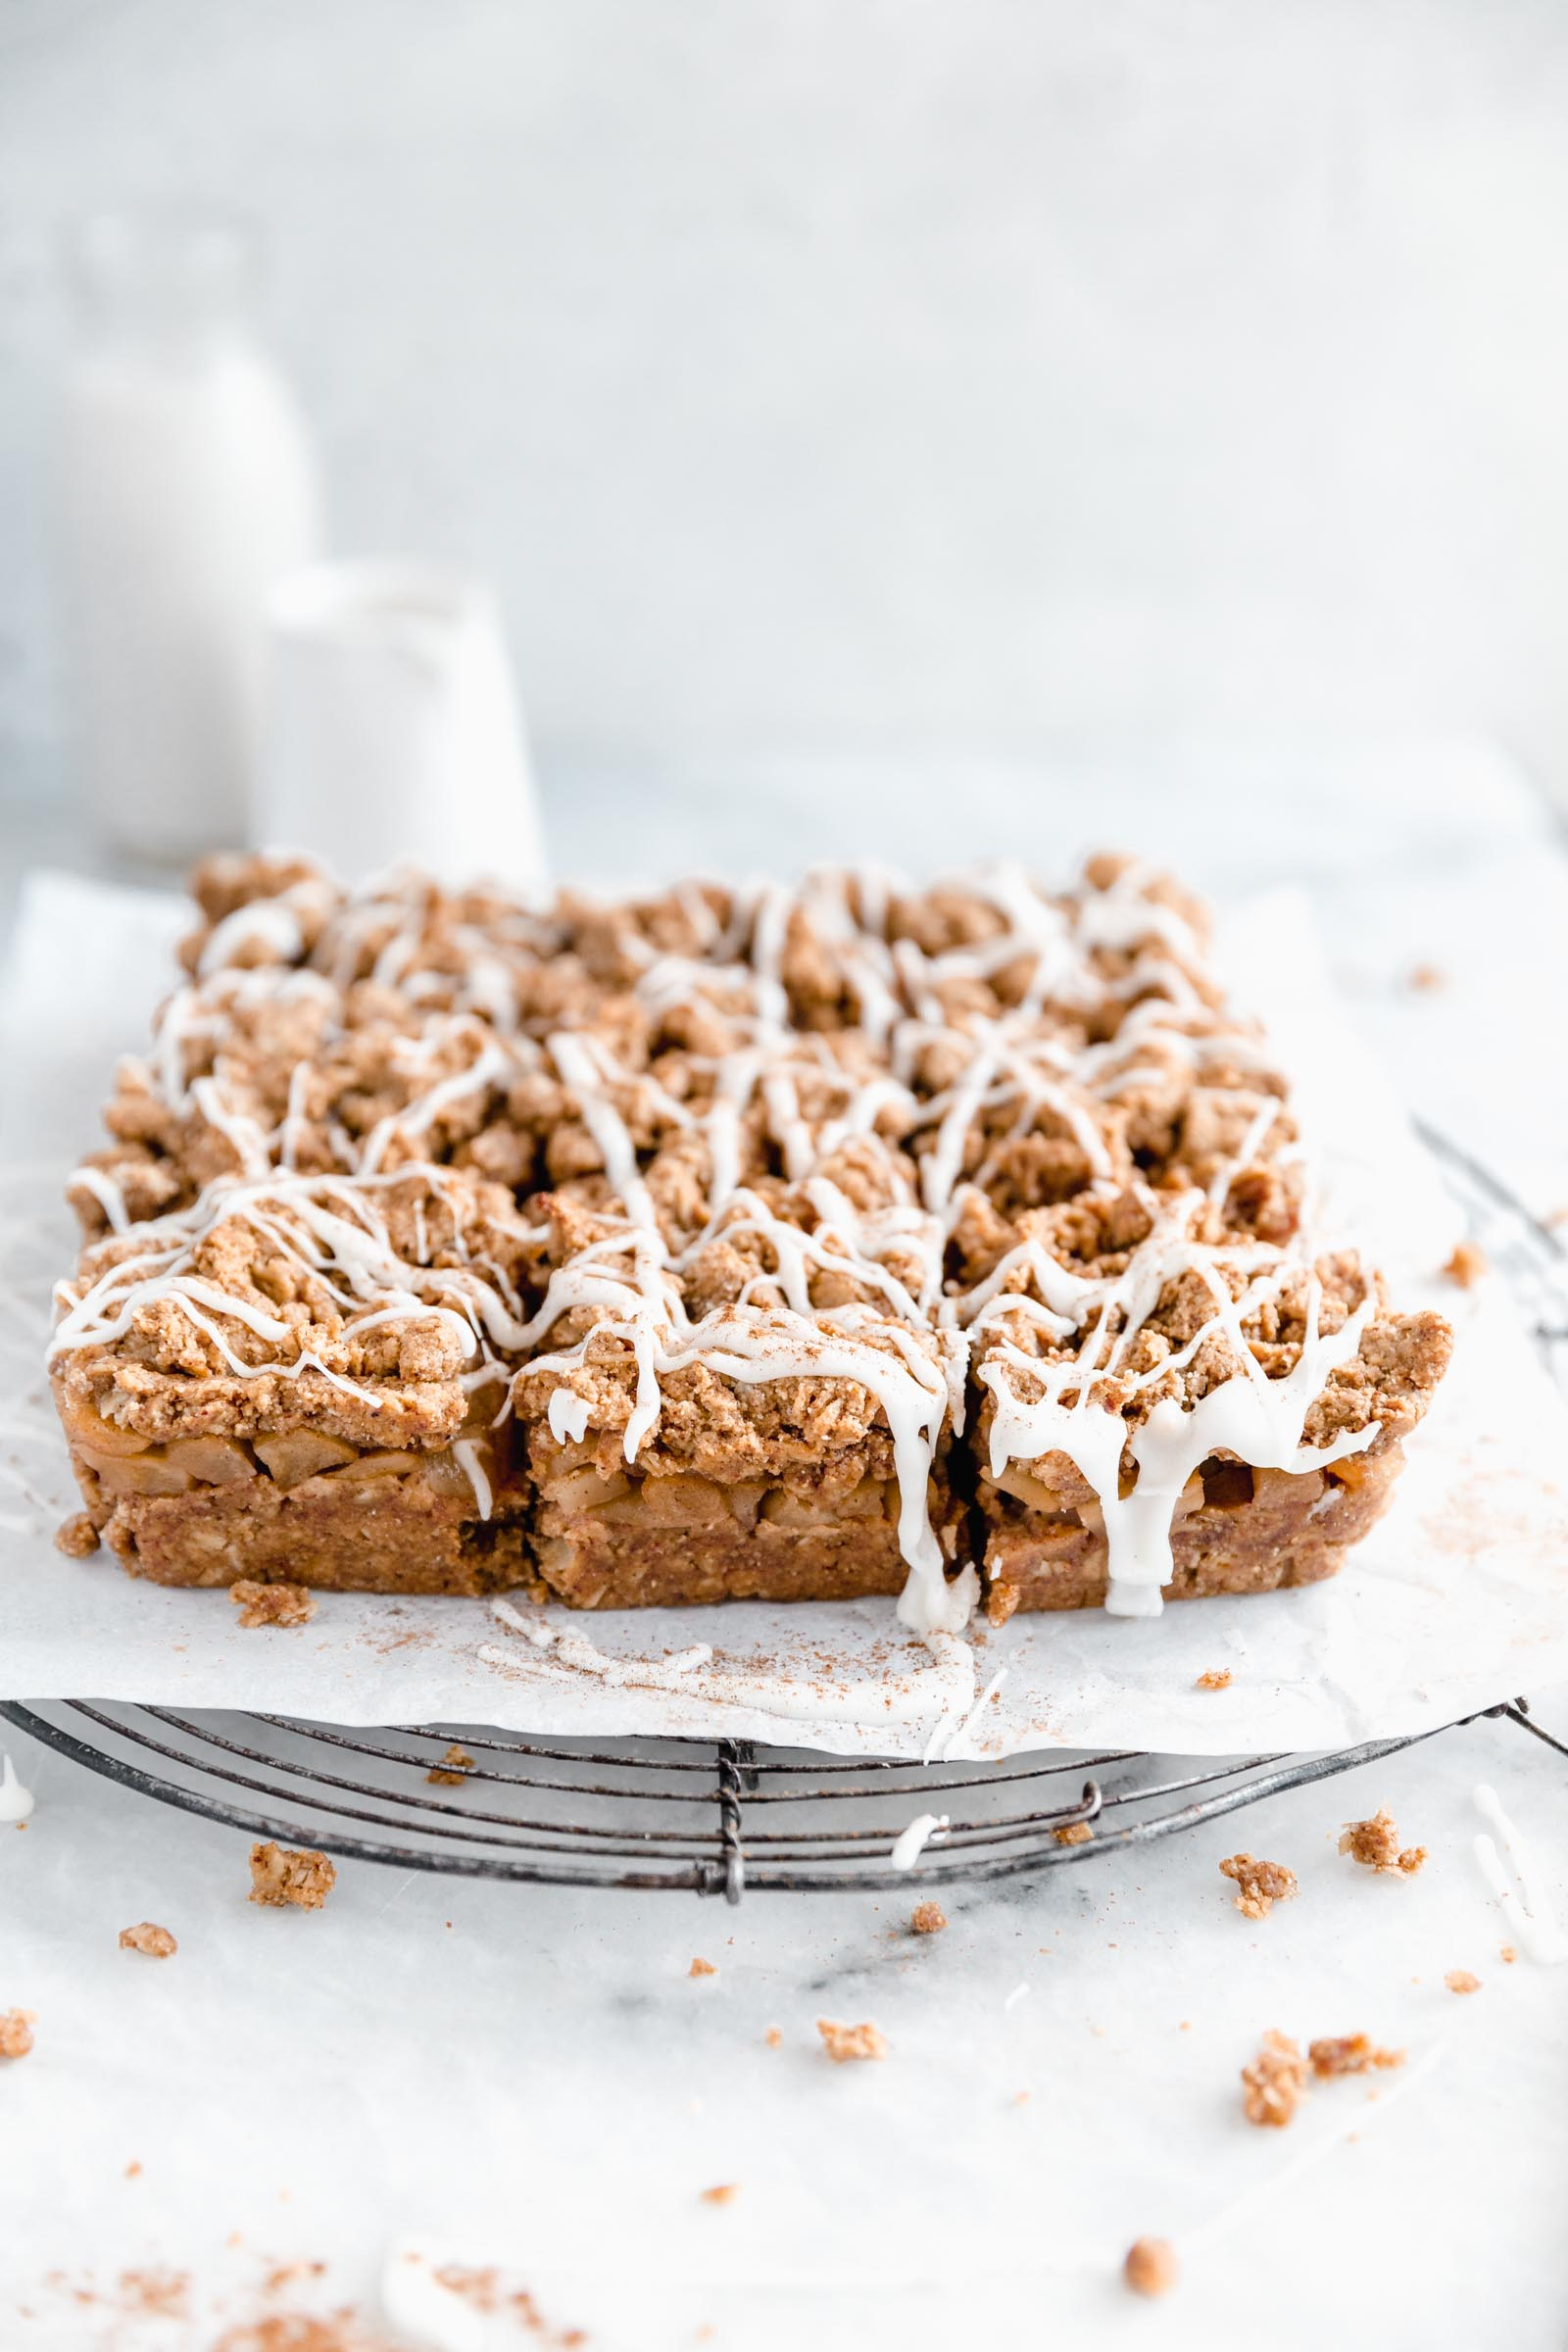 Apple crumble bars drizzled with icing on a cooling rack